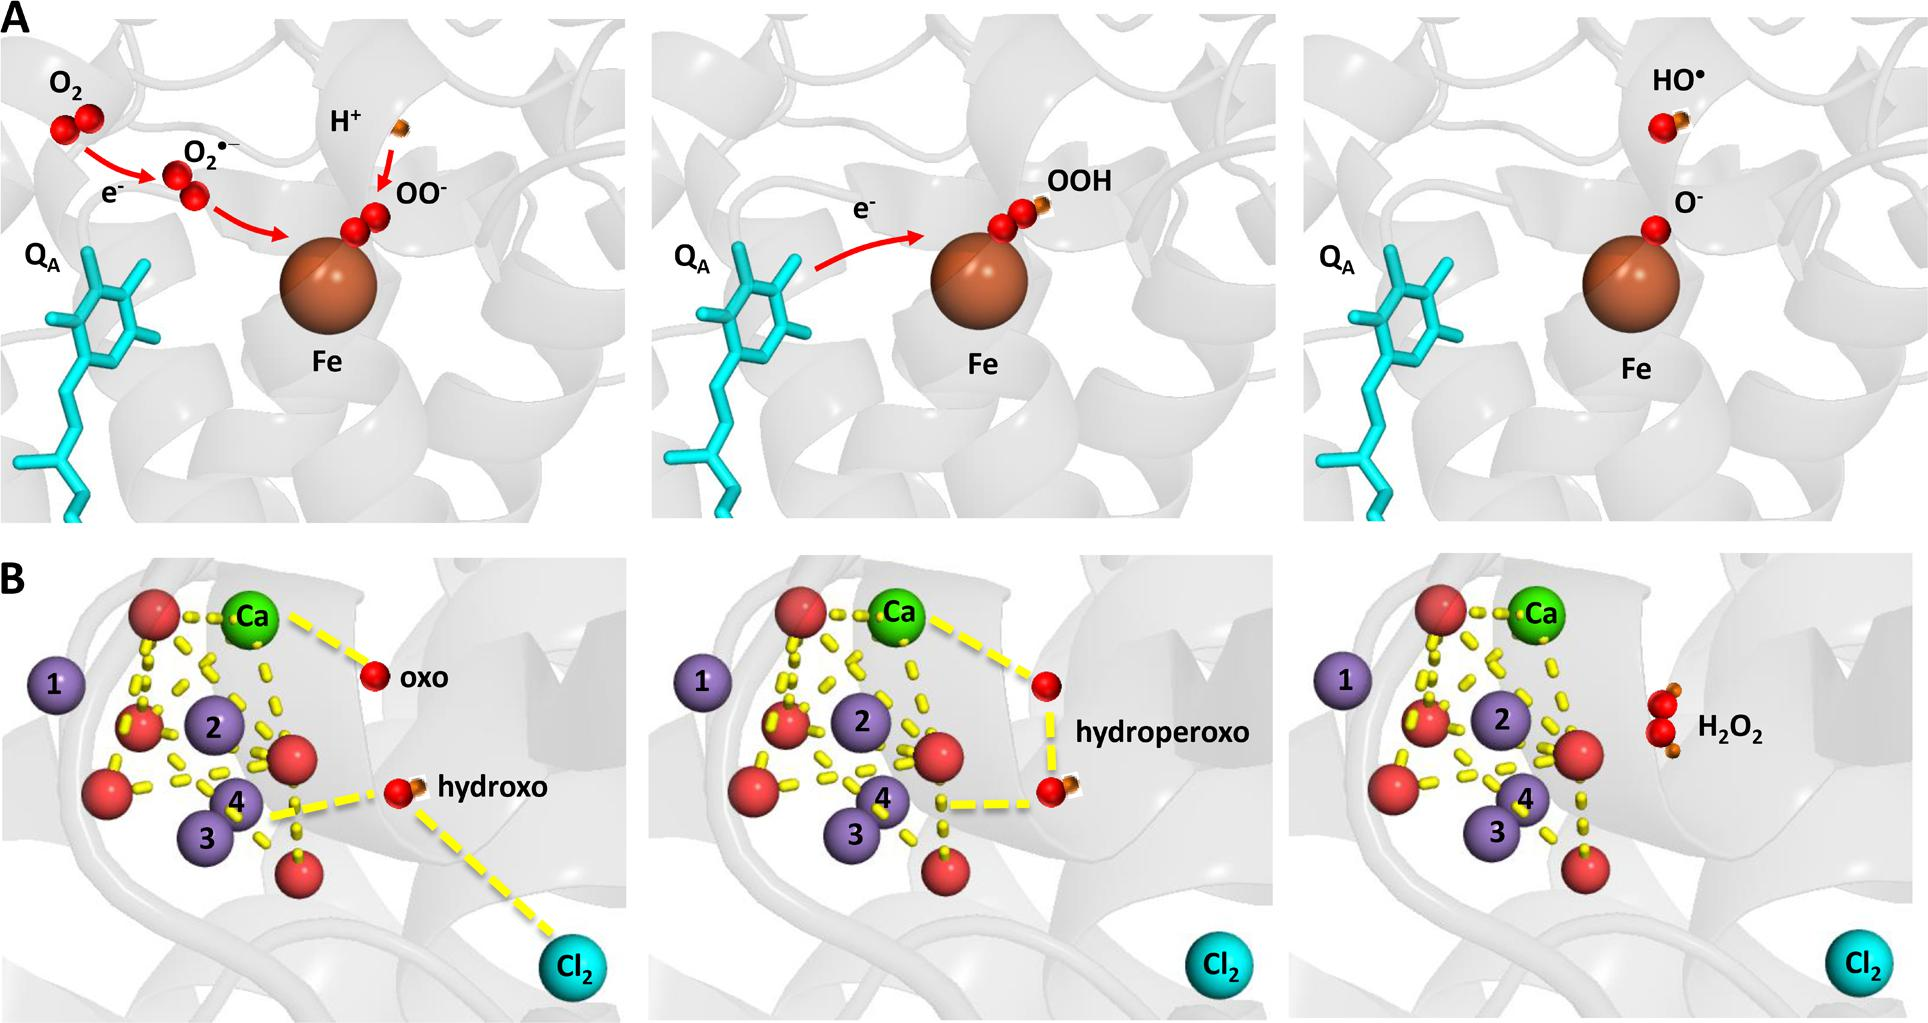 Frontiers | Production of Reactive Oxygen Species by Photosystem II